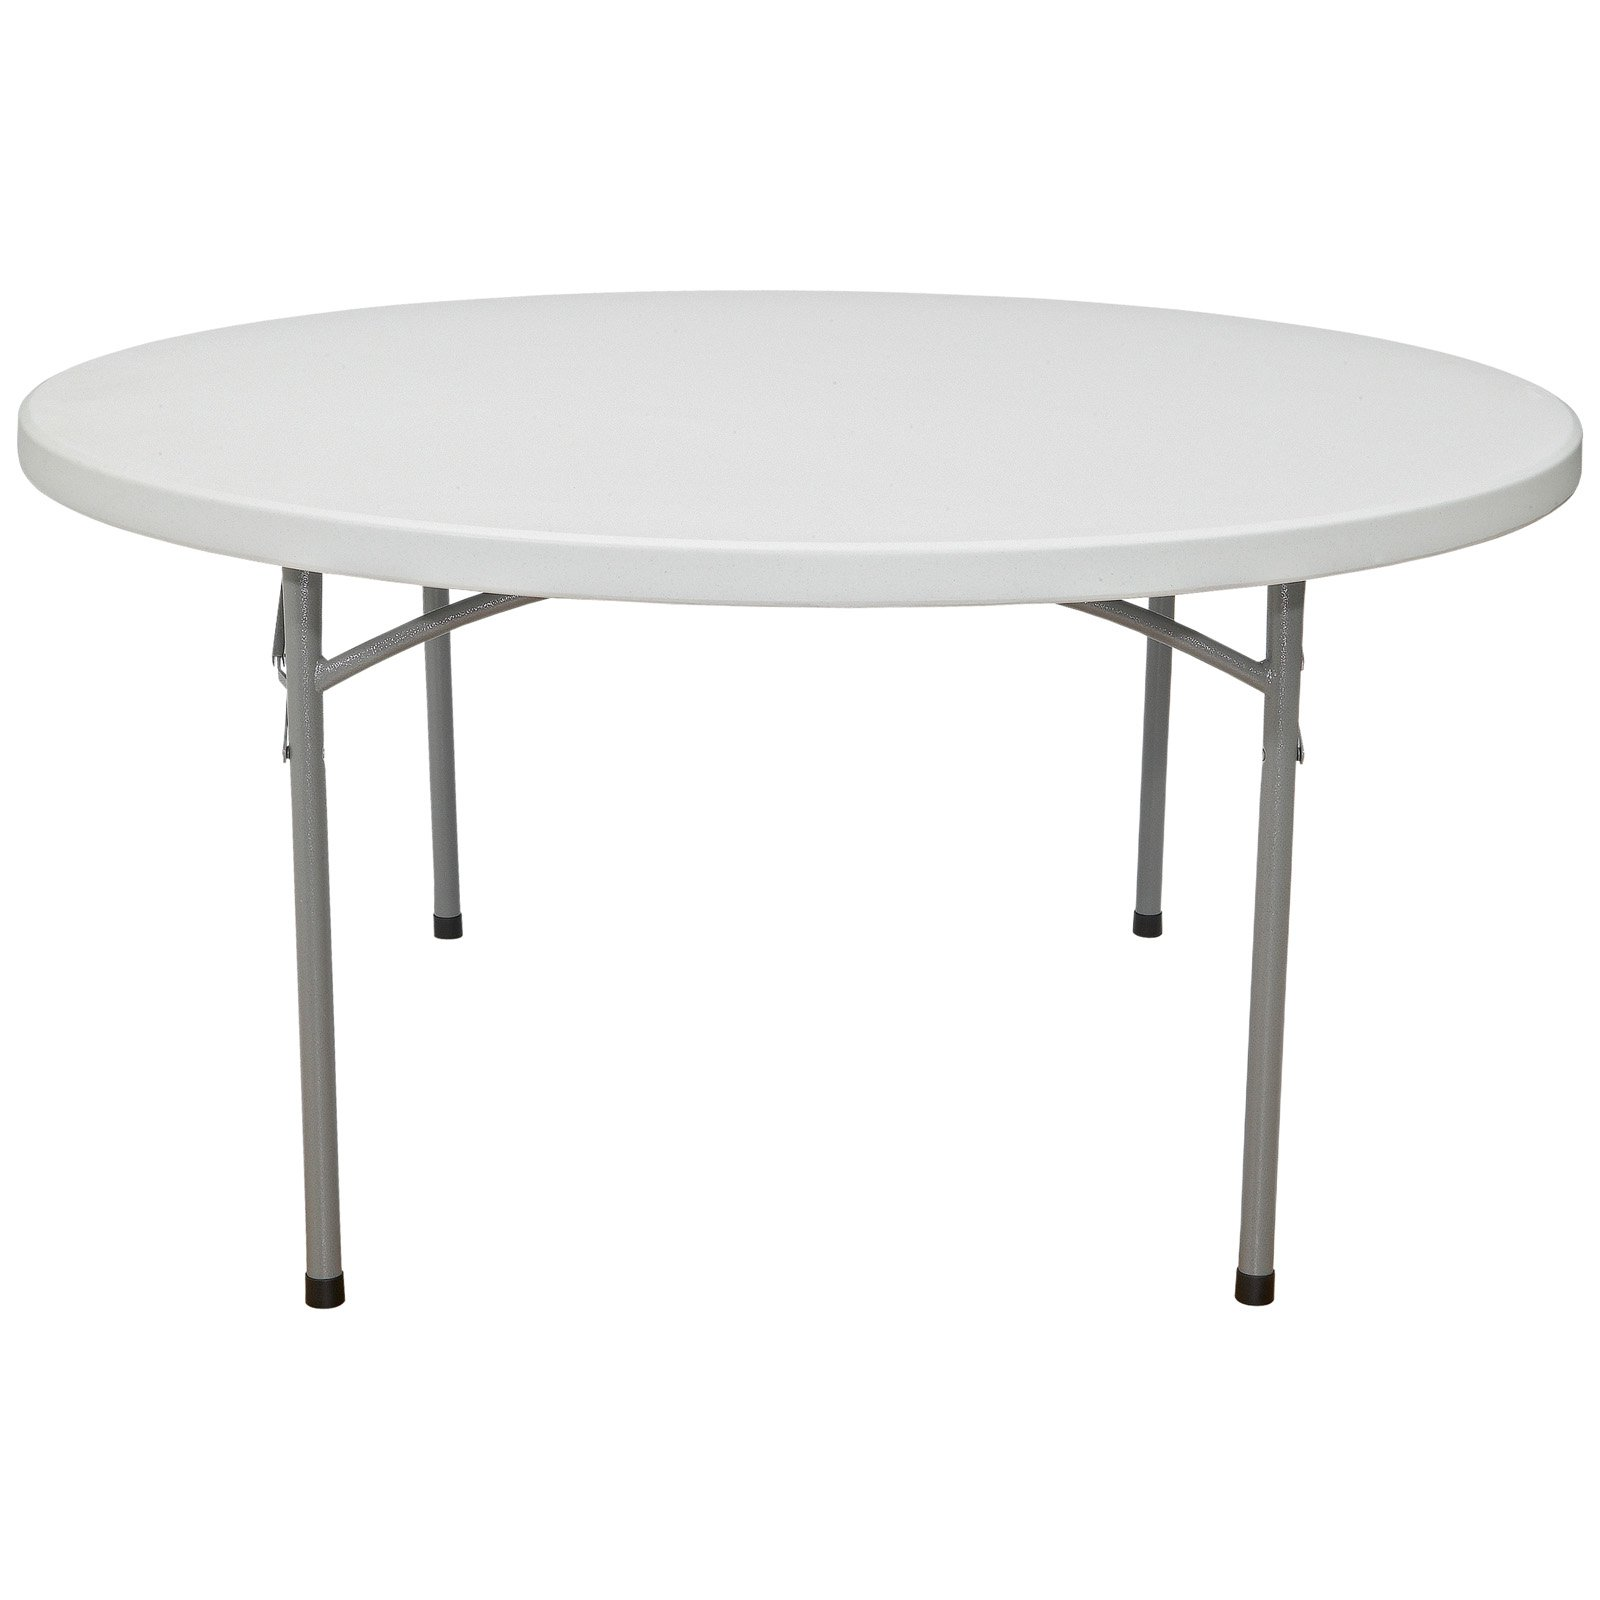 National Public Seating BT Series Round Blow Molded Folding Table by National Public Seating